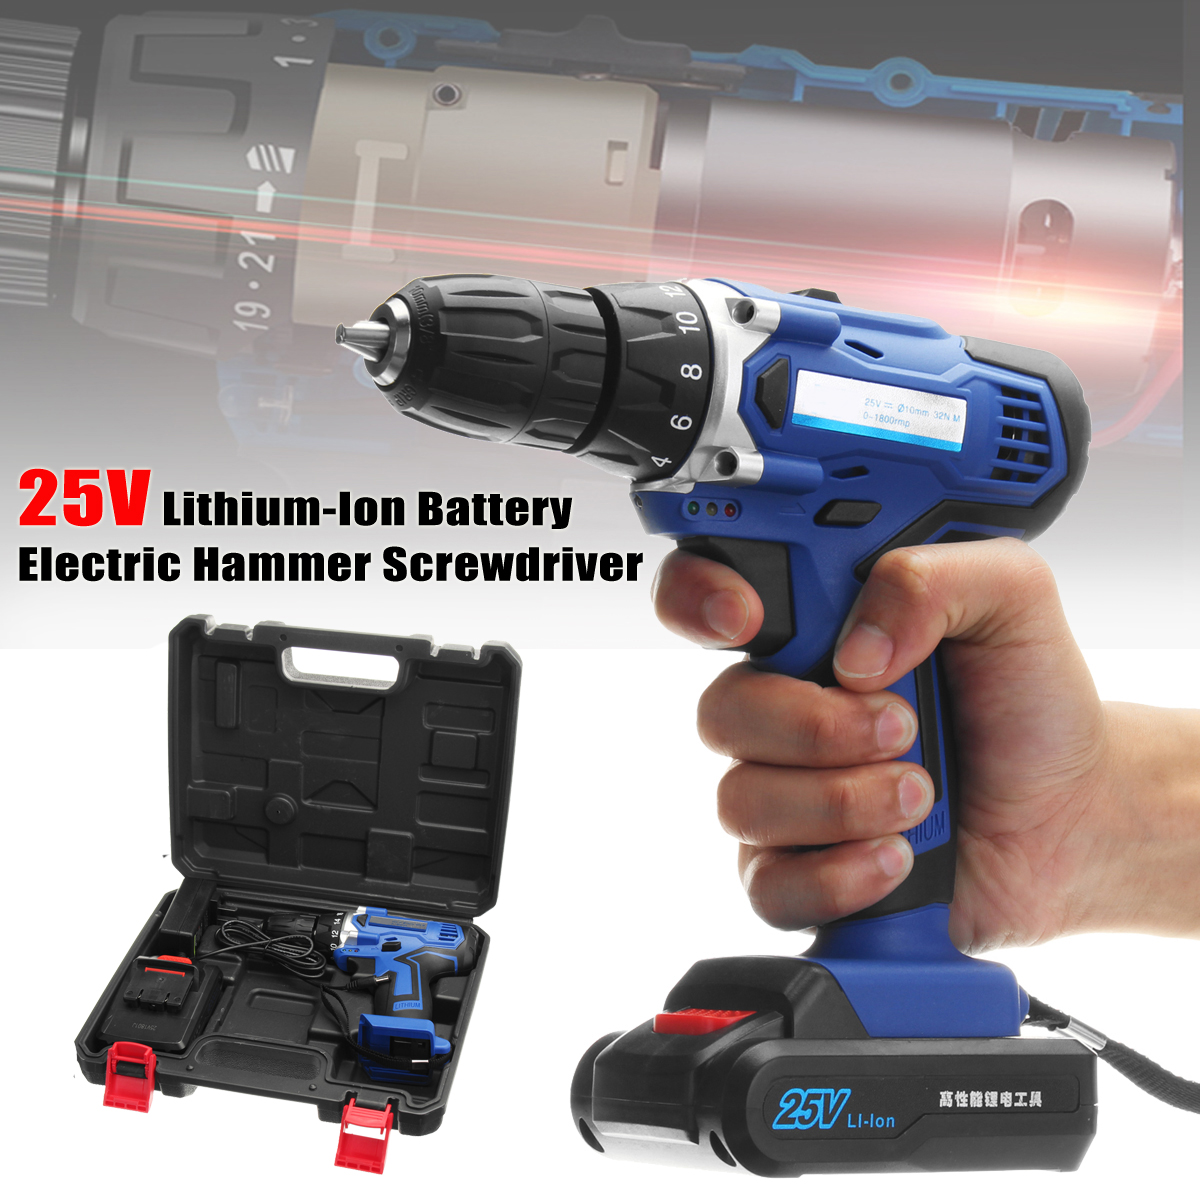 25V Lithium-Ion Battery Power Drill Driver Rechargeable Cordless Drill Electric Hammer Screwdriver Power Tools 18v dc lithium ion battery cordless drill driver power tools screwdriver electric drill with battery included